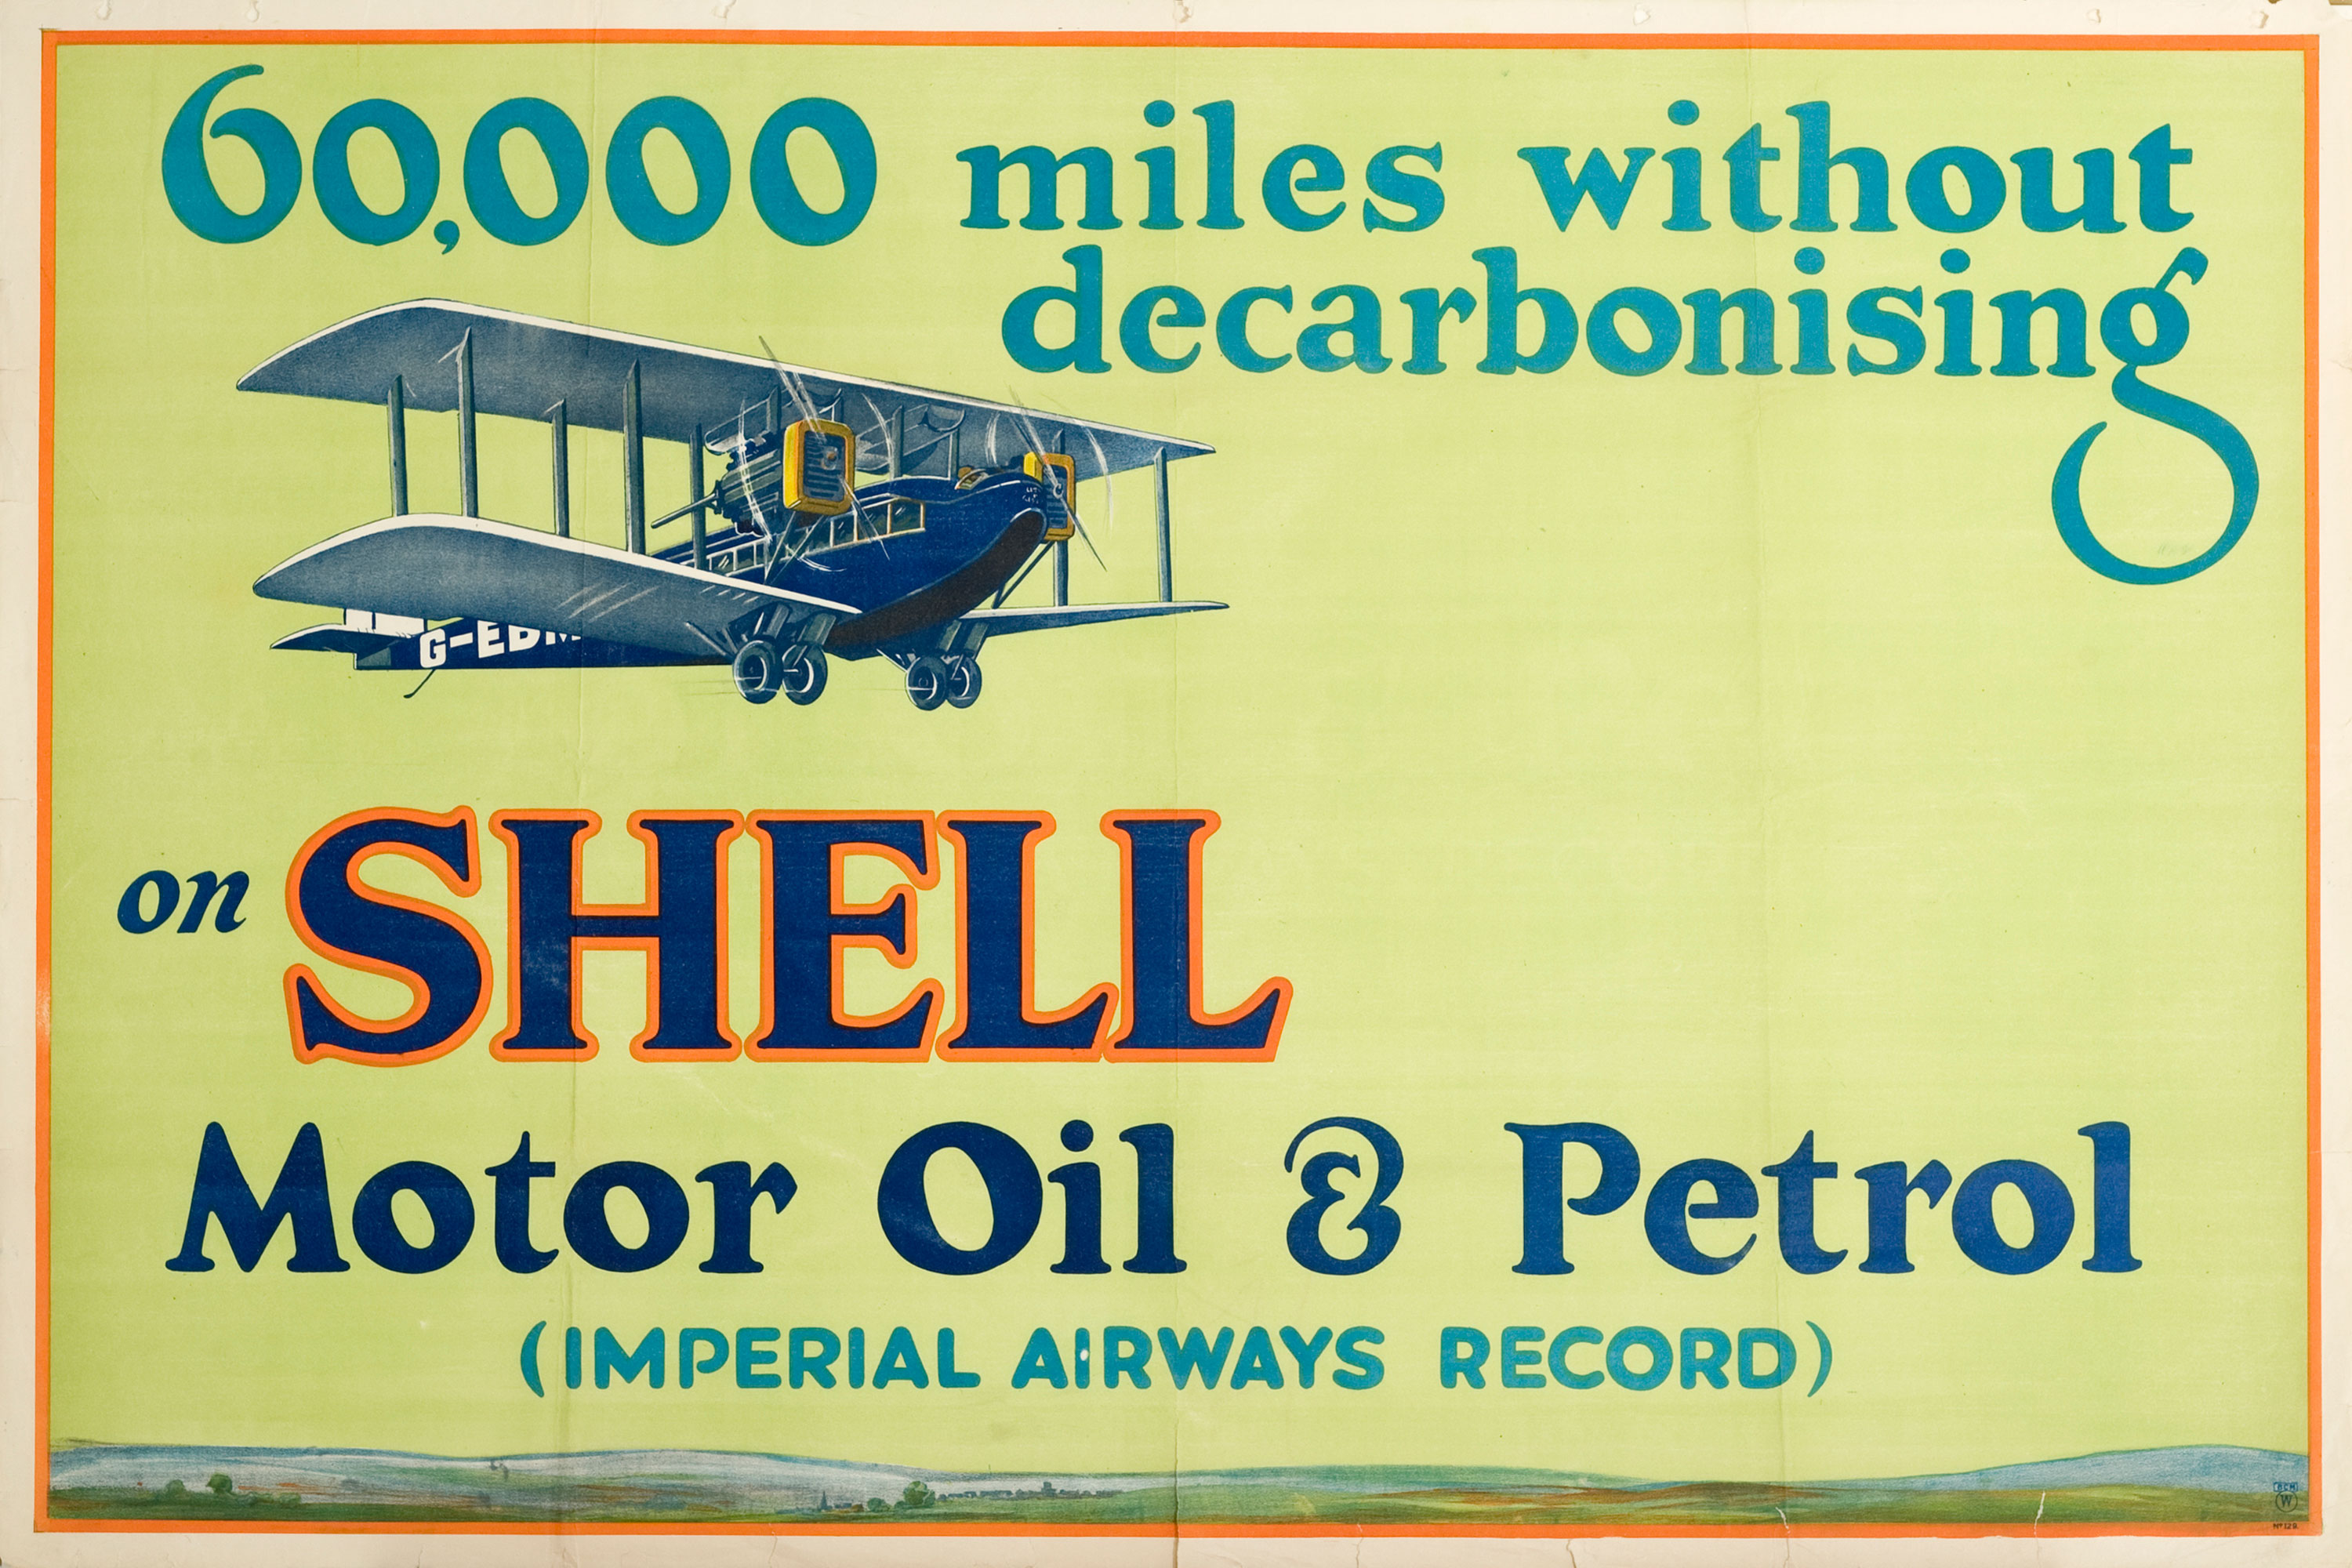 "Shell poster number 129, 60,000 miles without decarbonising, Shell Studio (1926). Painting of a 1920s aeroplane. Text reads; ""60,000 miles without decarbonising on Shell Motor Oil & Petrol (Imperial Airways Record)."